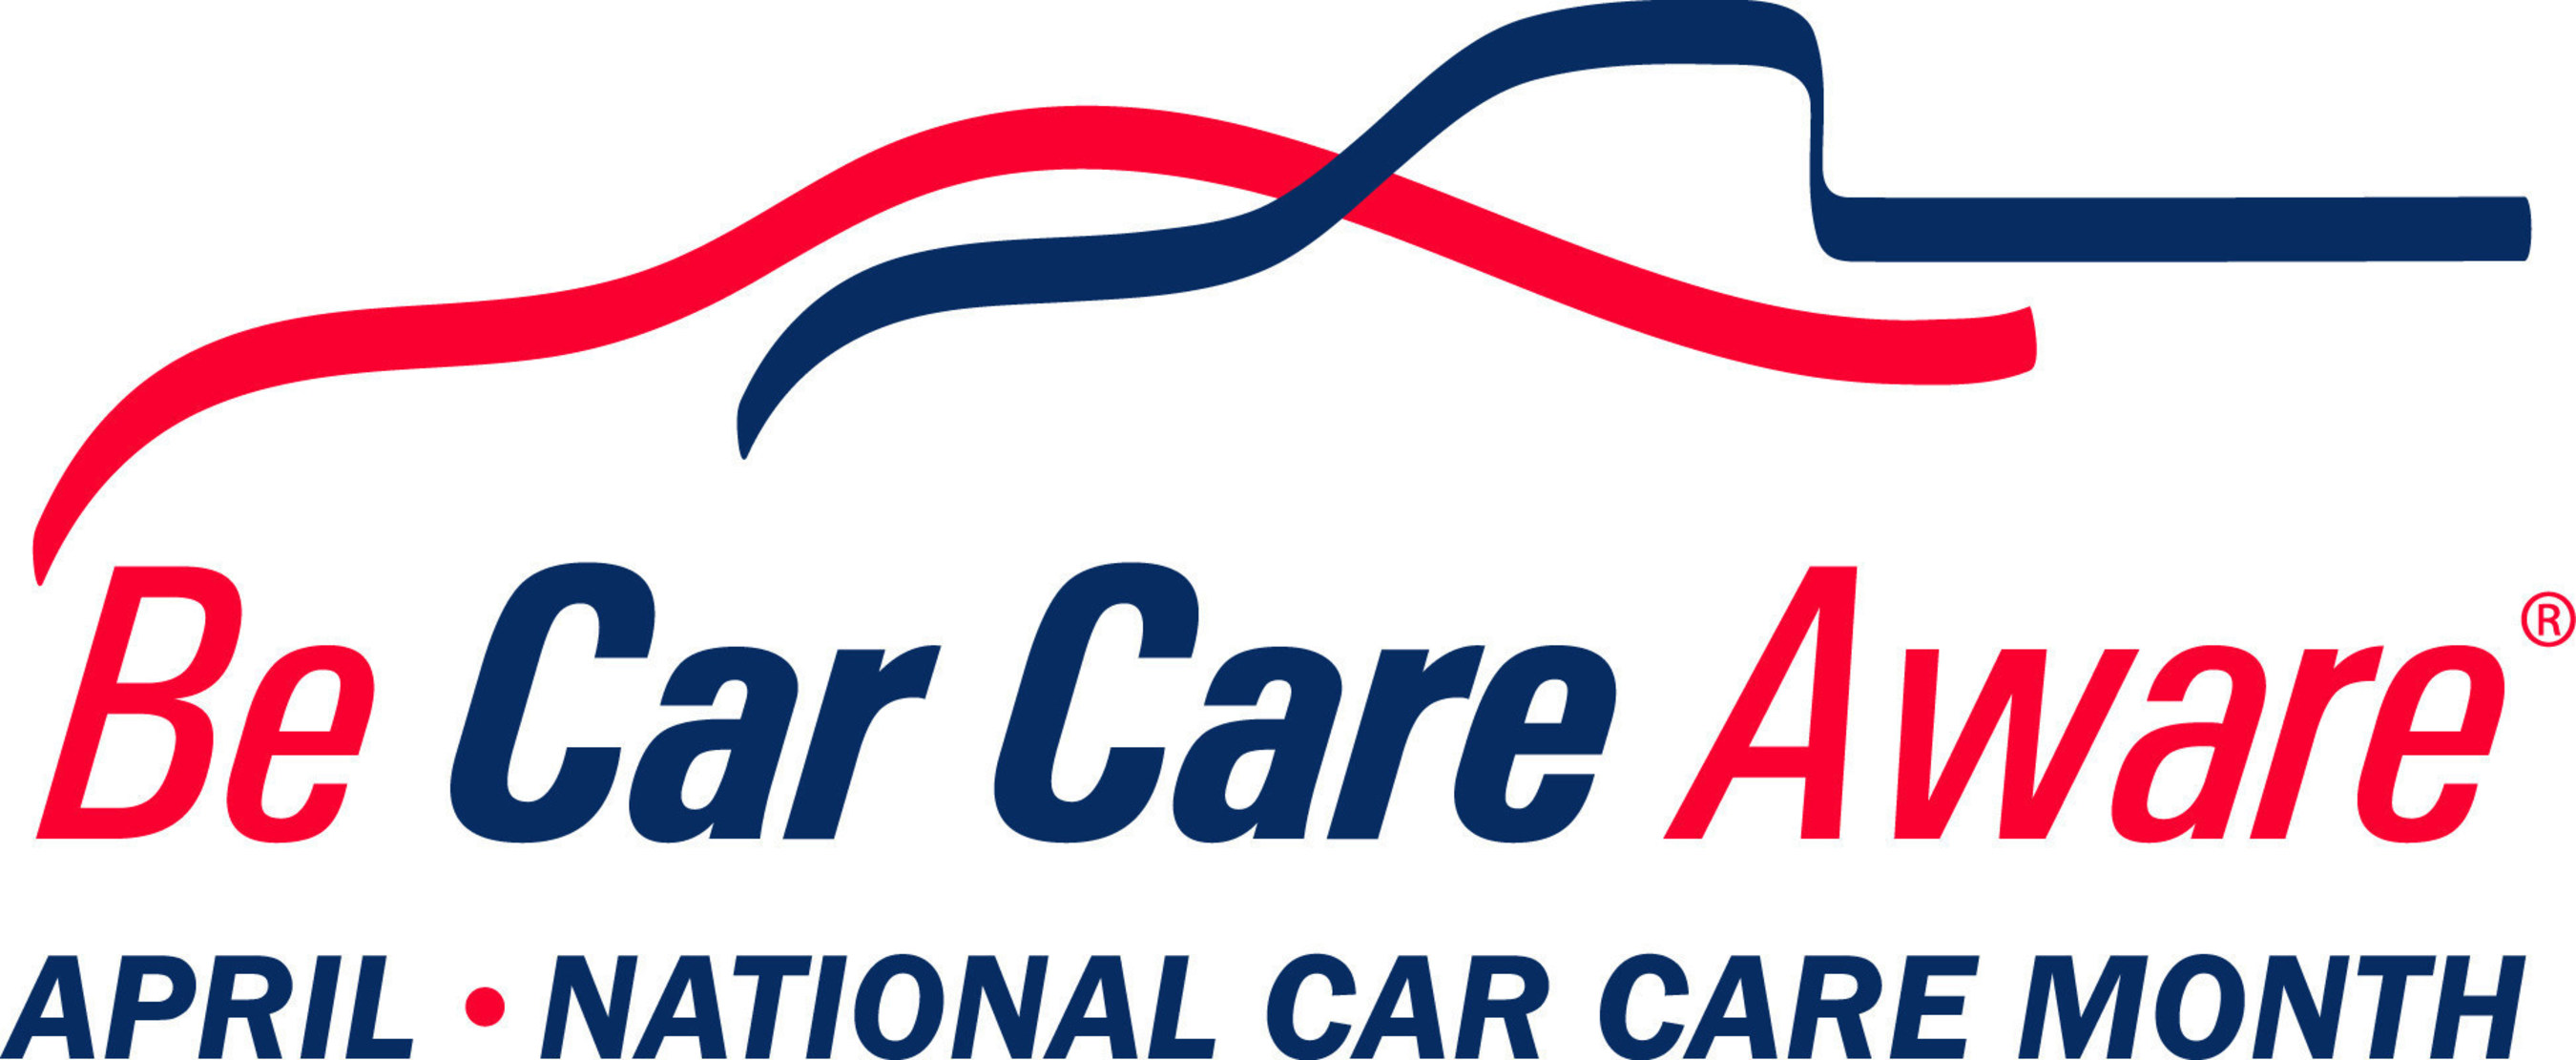 April Is National Car Care Month Time To Make Auto Care A Top Priority